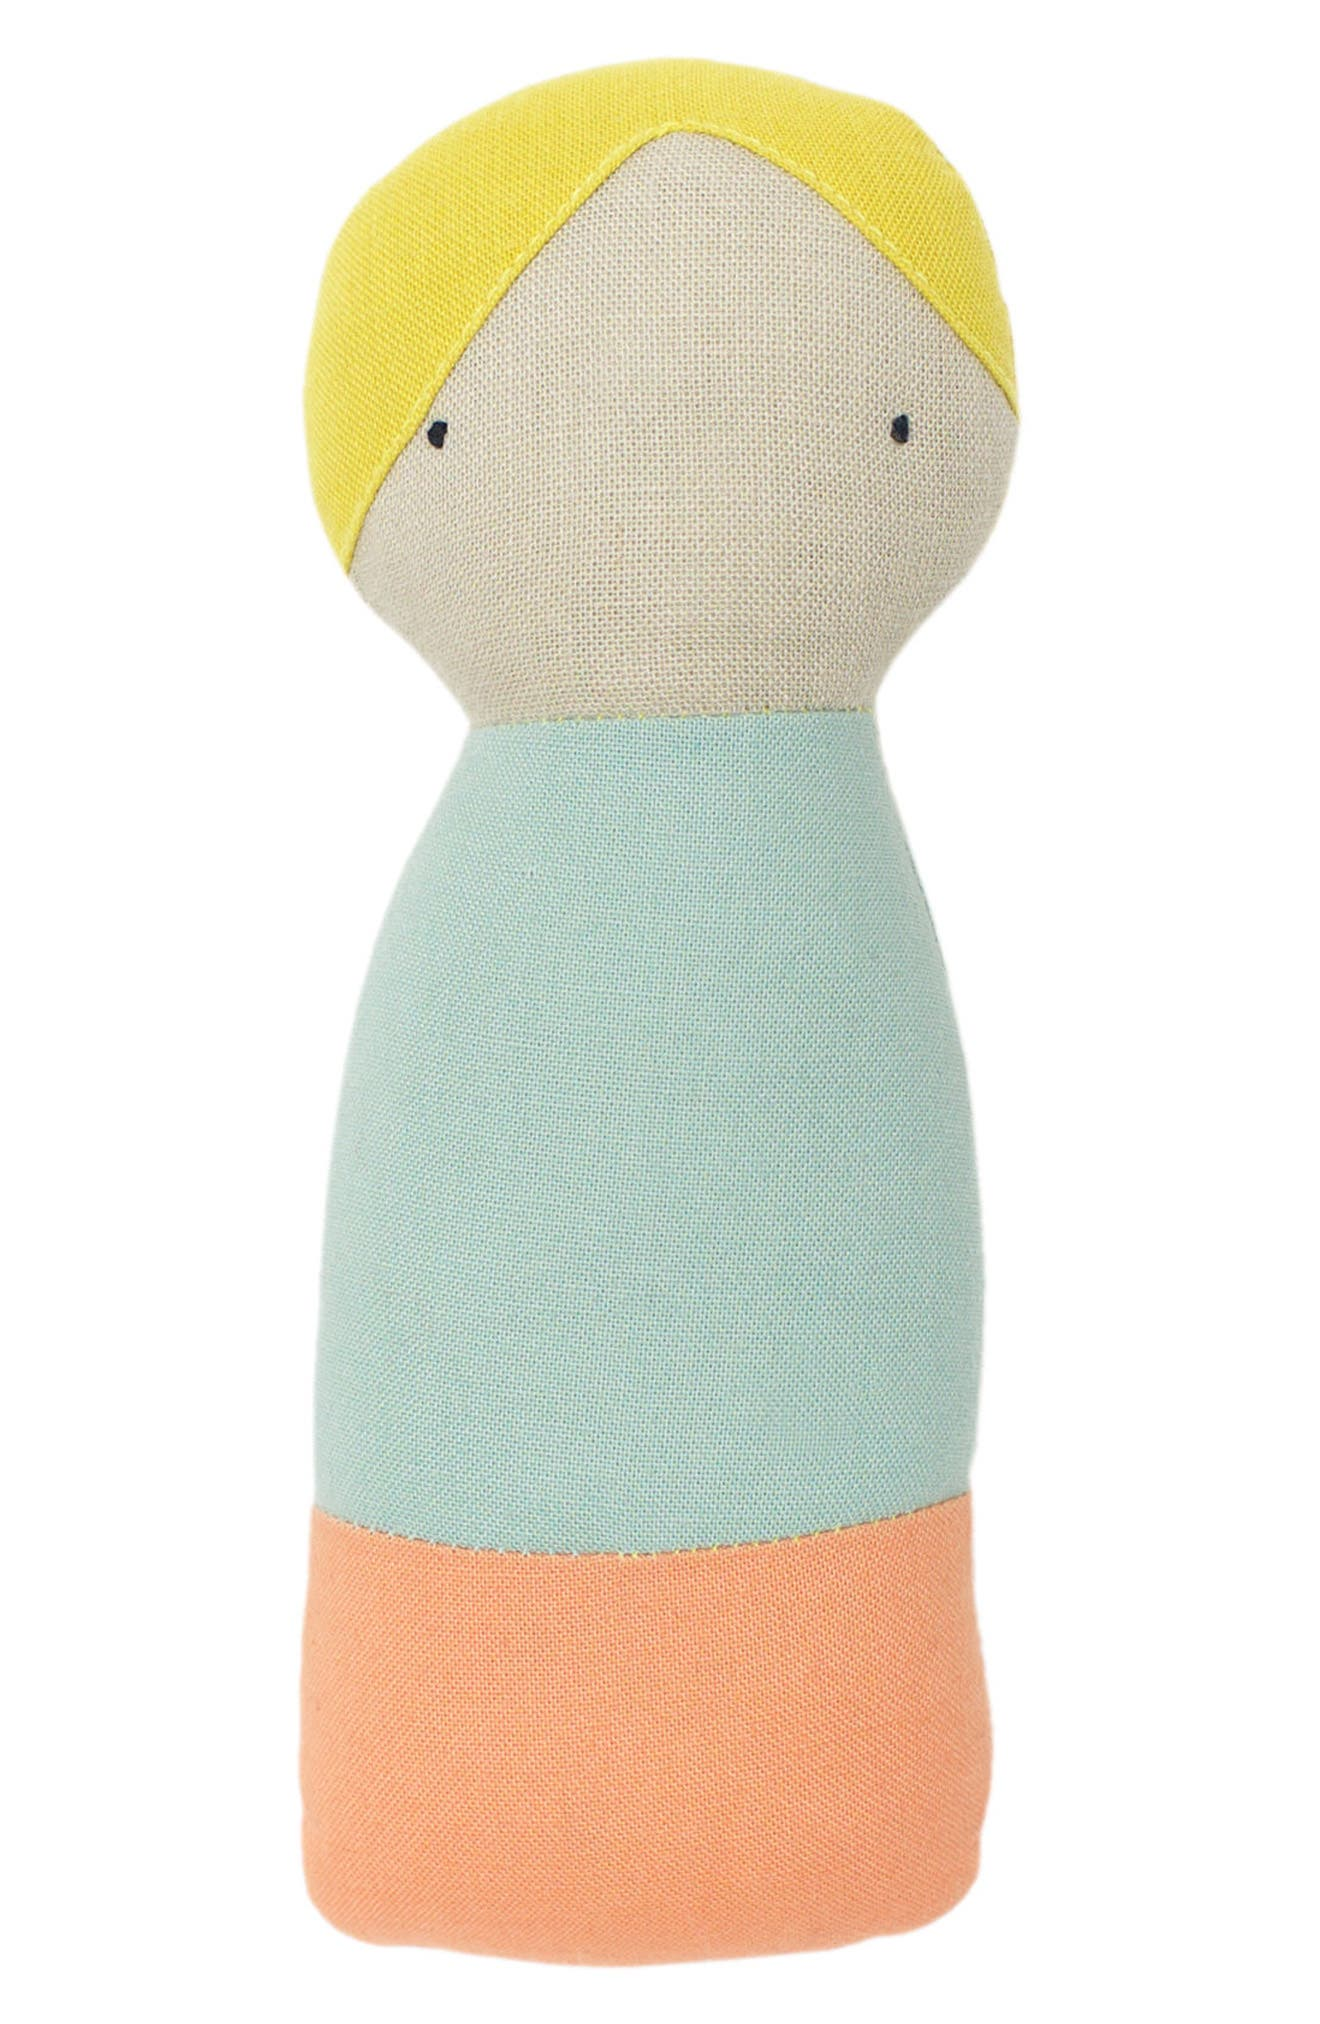 ouistitine x Pehr Little Peeps Rattle,                         Main,                         color,